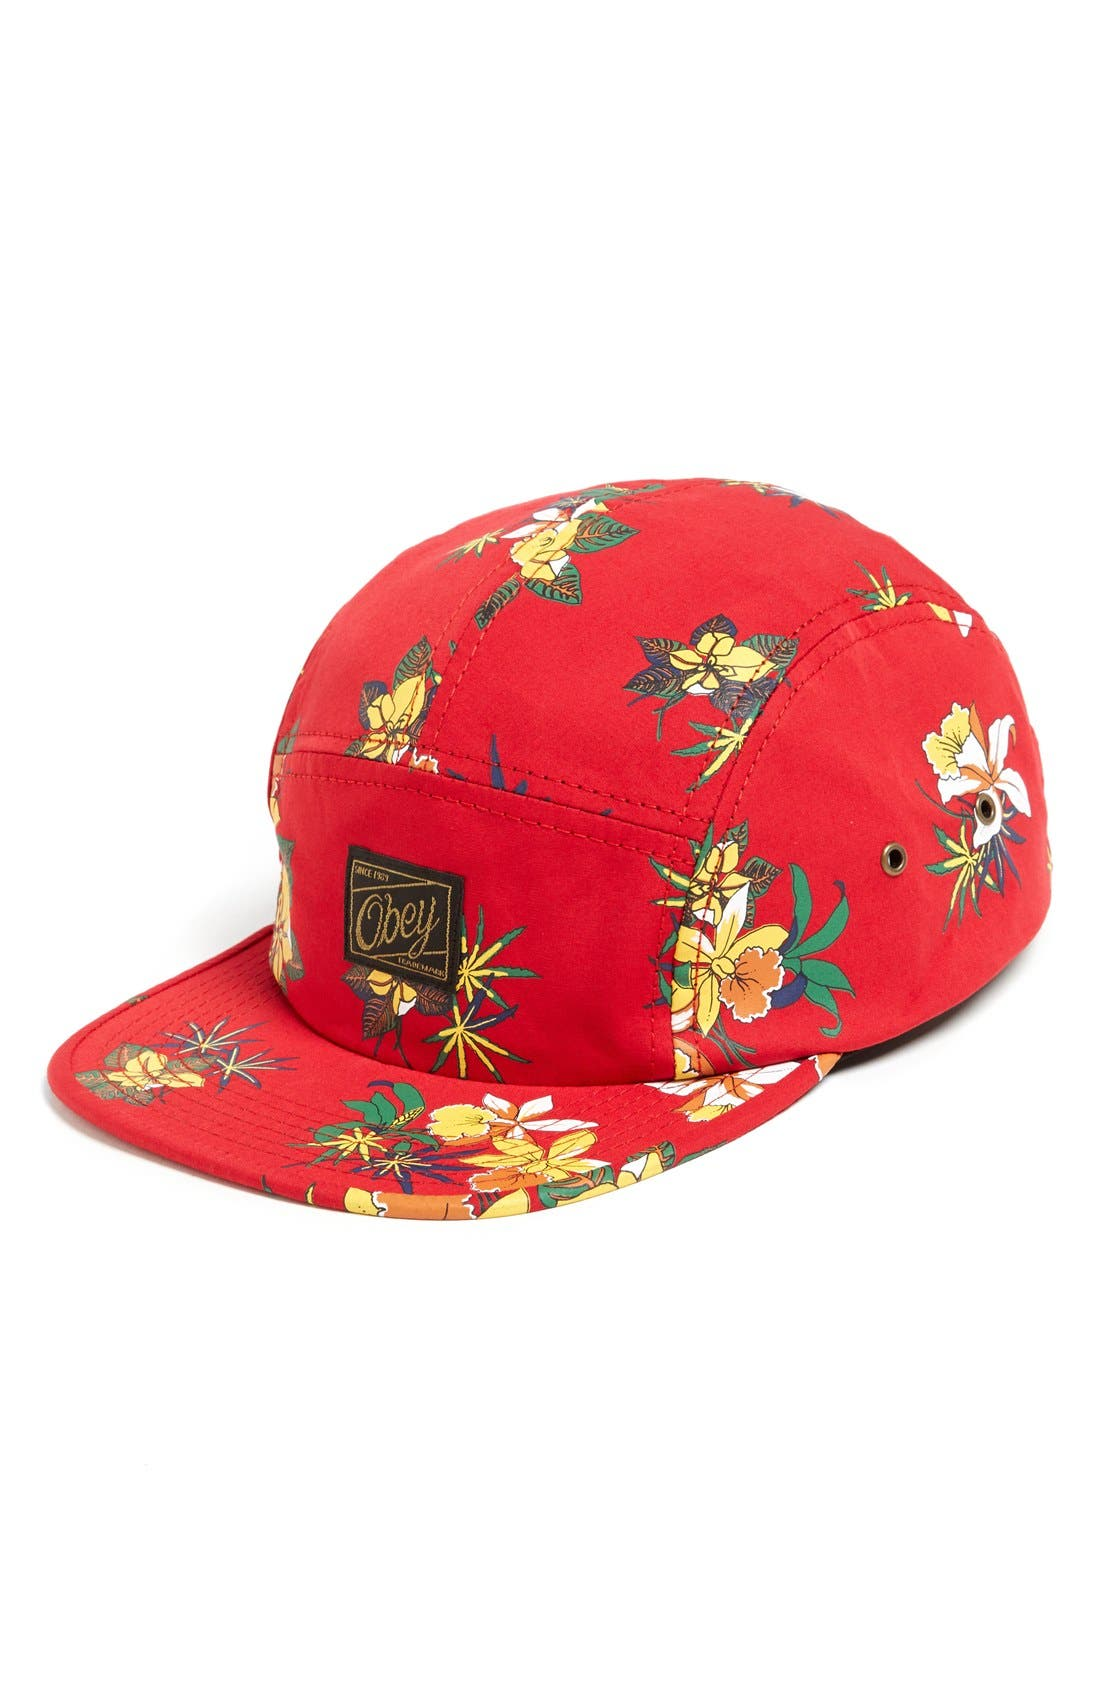 Alternate Image 1 Selected - Obey Floral Print Five-Panel Cap